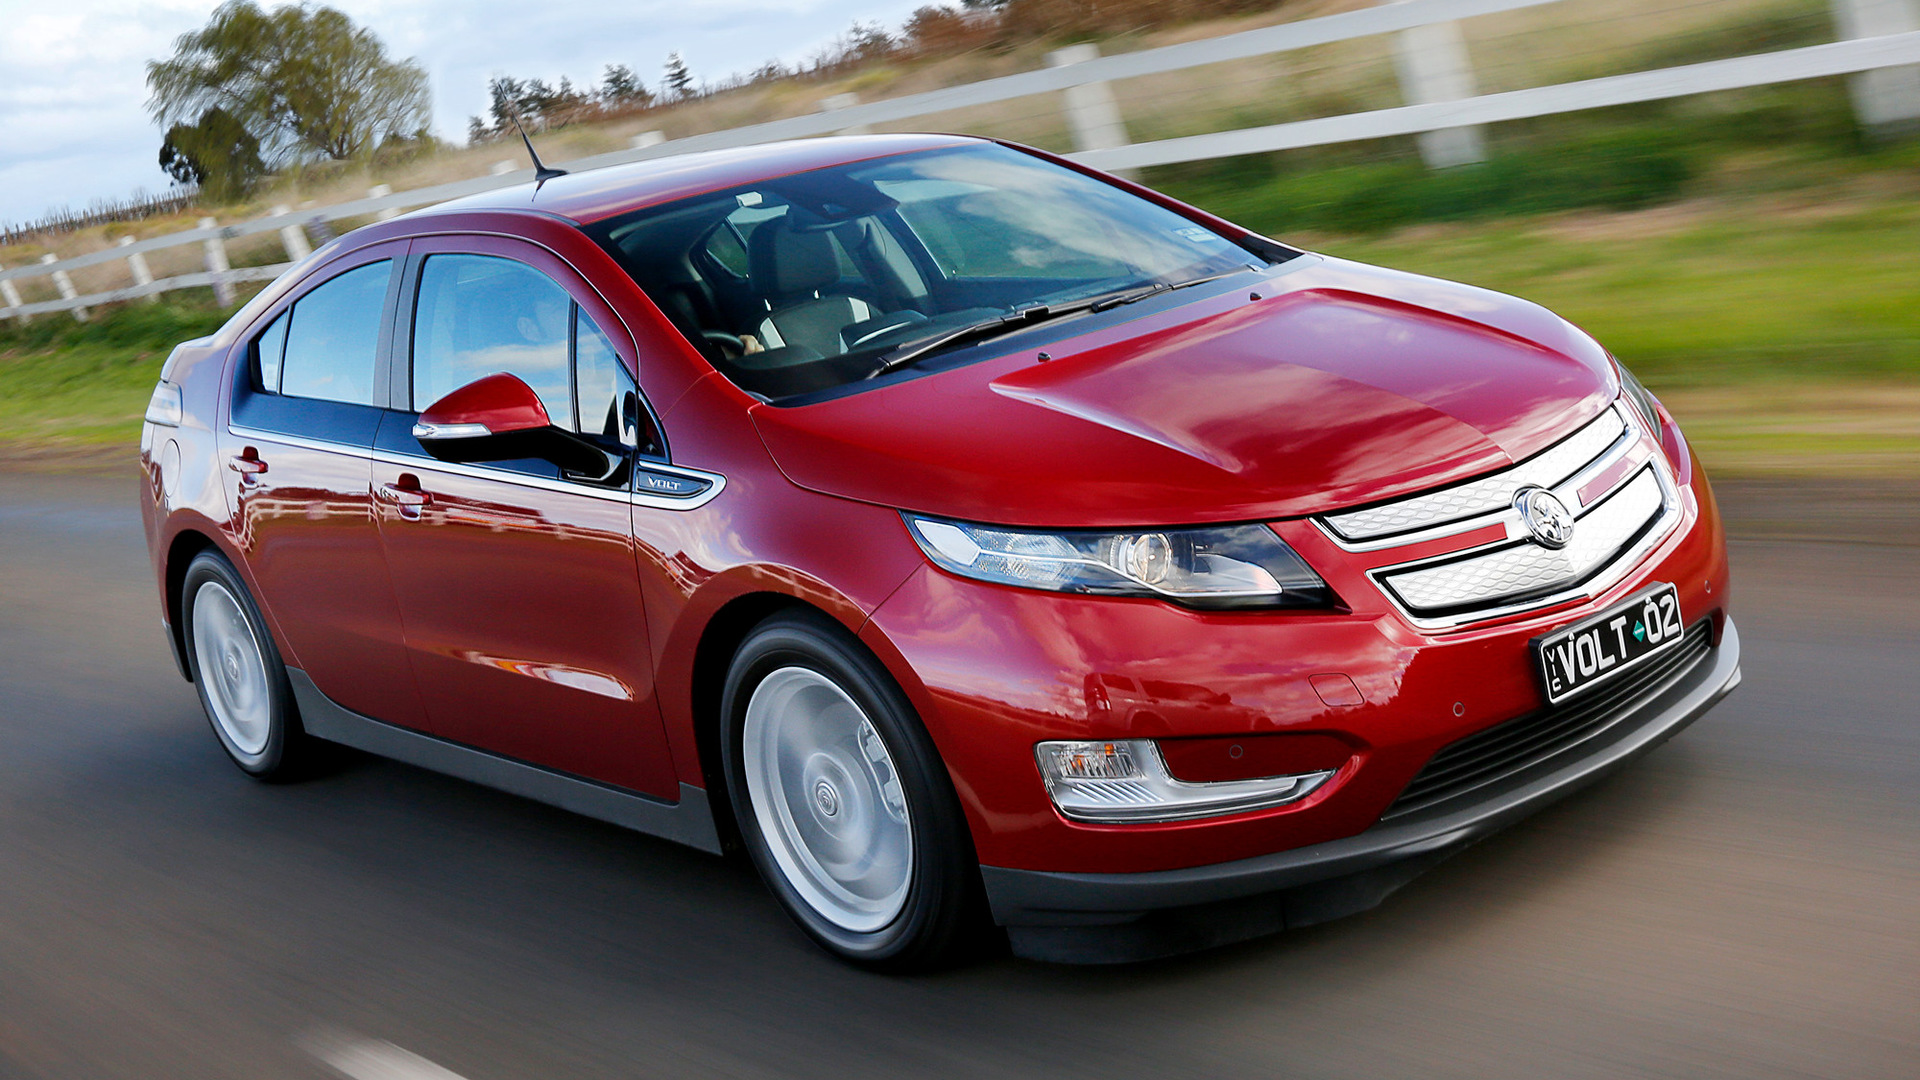 Holden Volt (2012) Wallpapers and HD Images